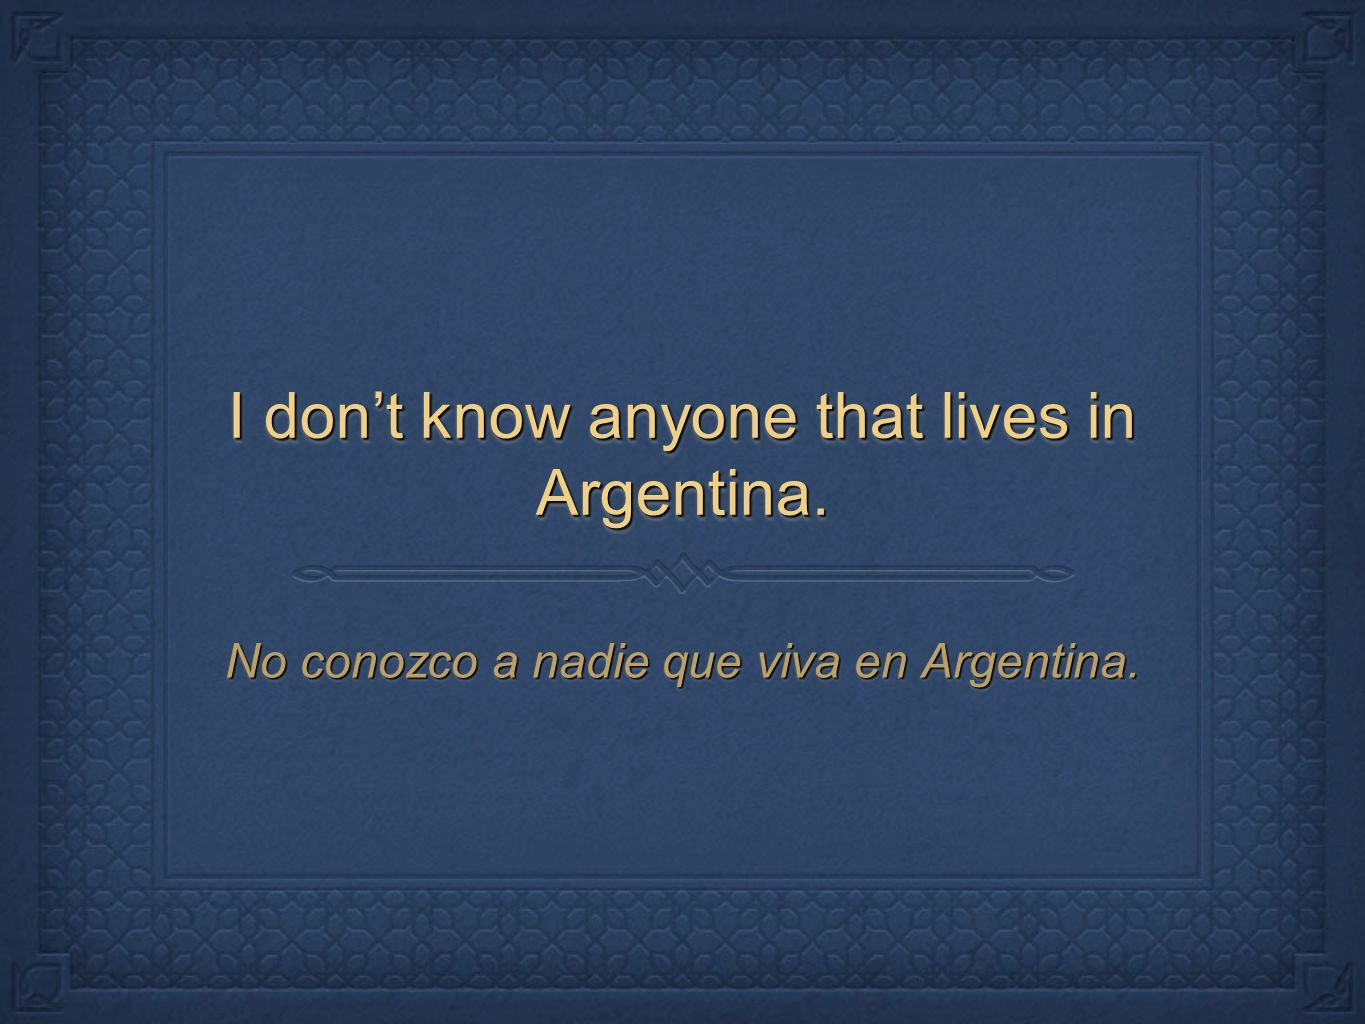 I don't know anyone that lives in Argentina.